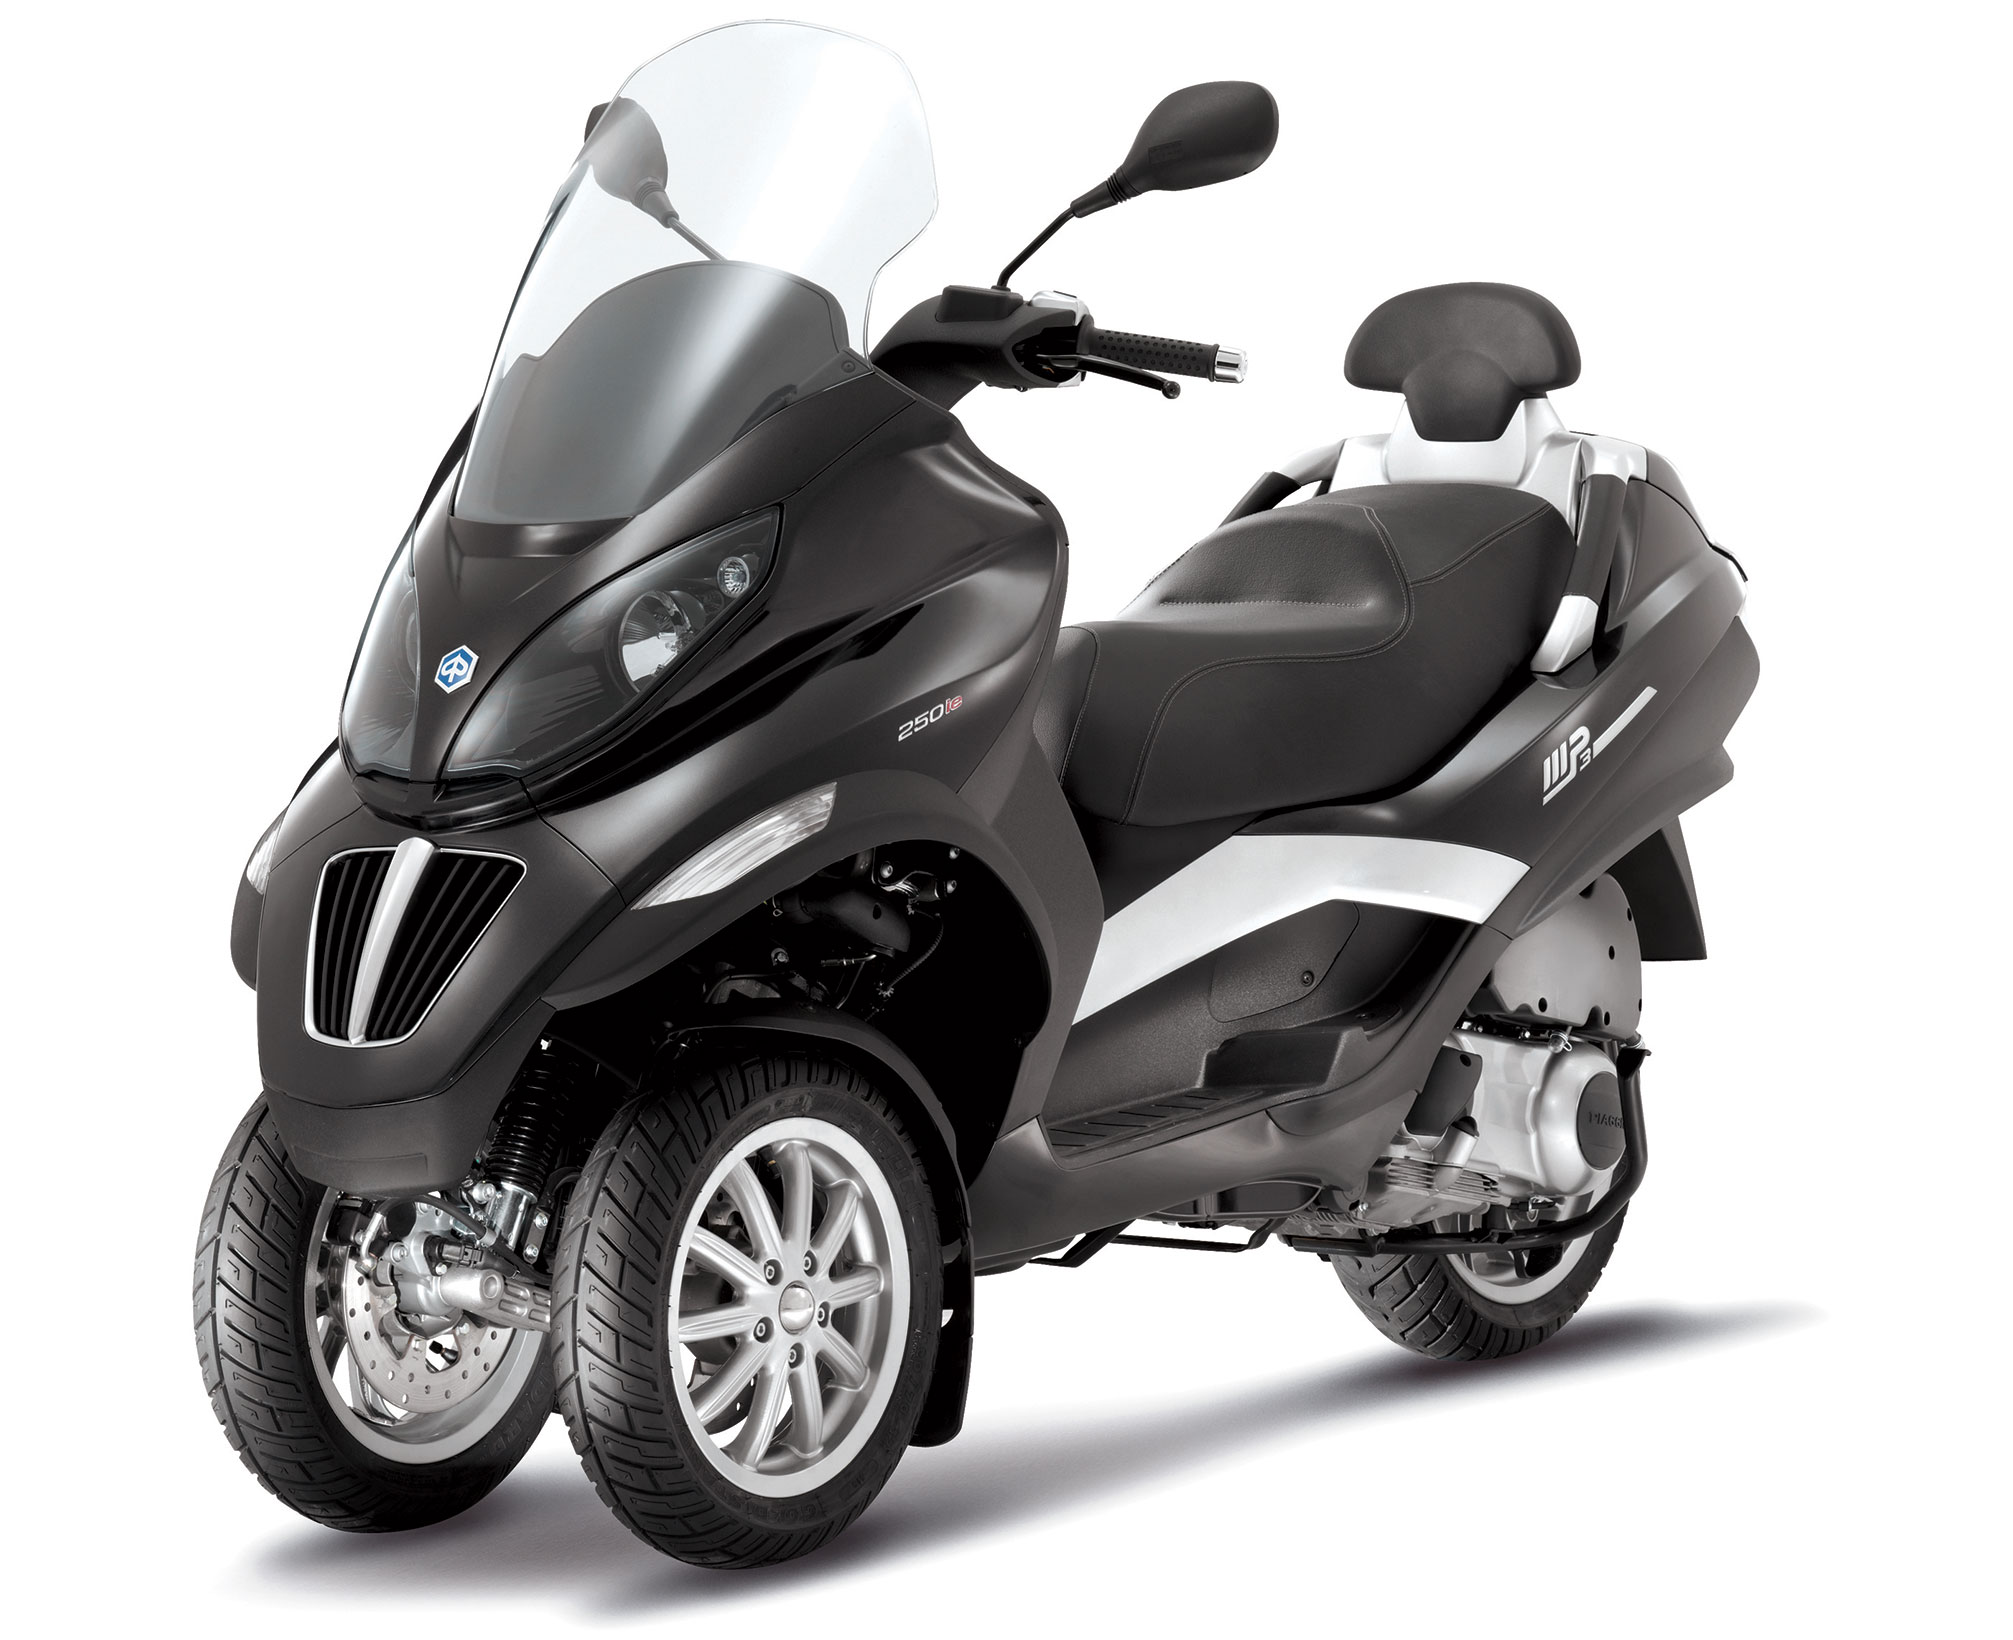 piaggio mp3 250 specs 2013 2014 autoevolution. Black Bedroom Furniture Sets. Home Design Ideas